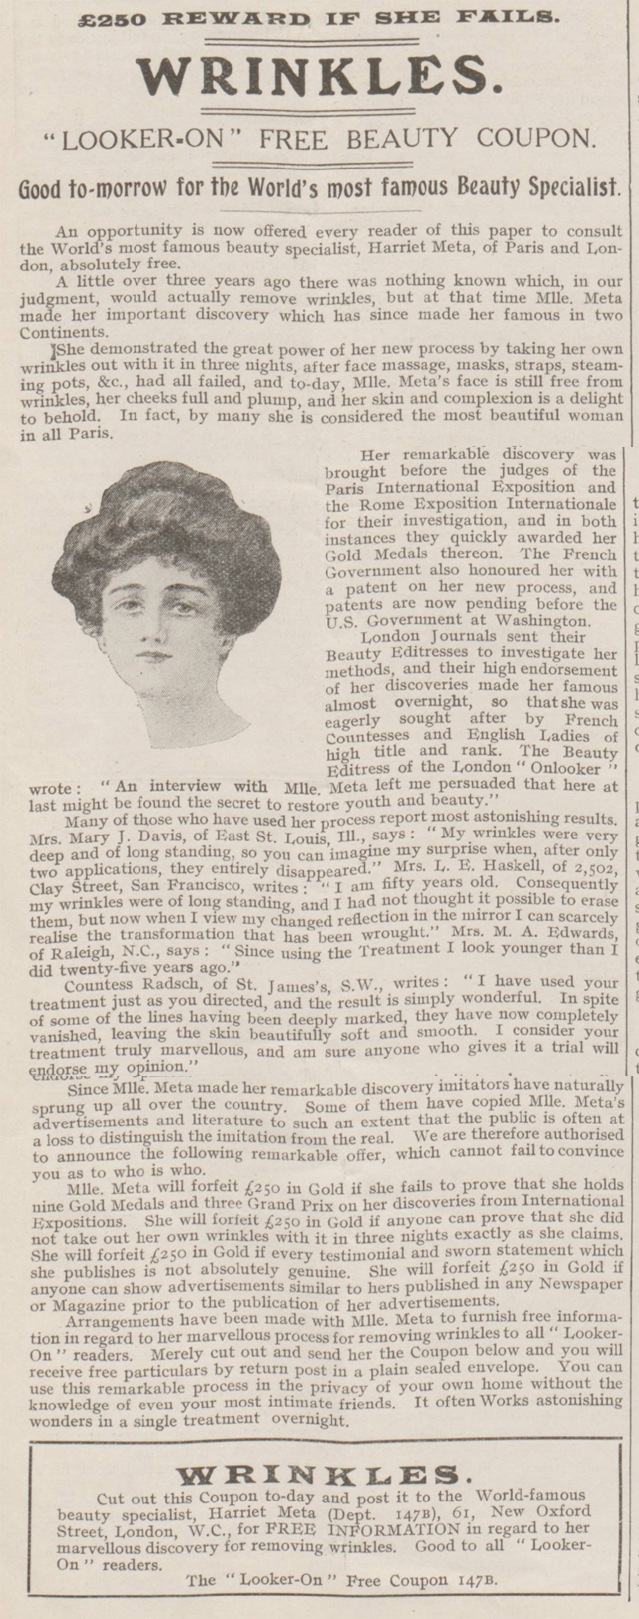 historical newspaper report on Women and Wrinkles